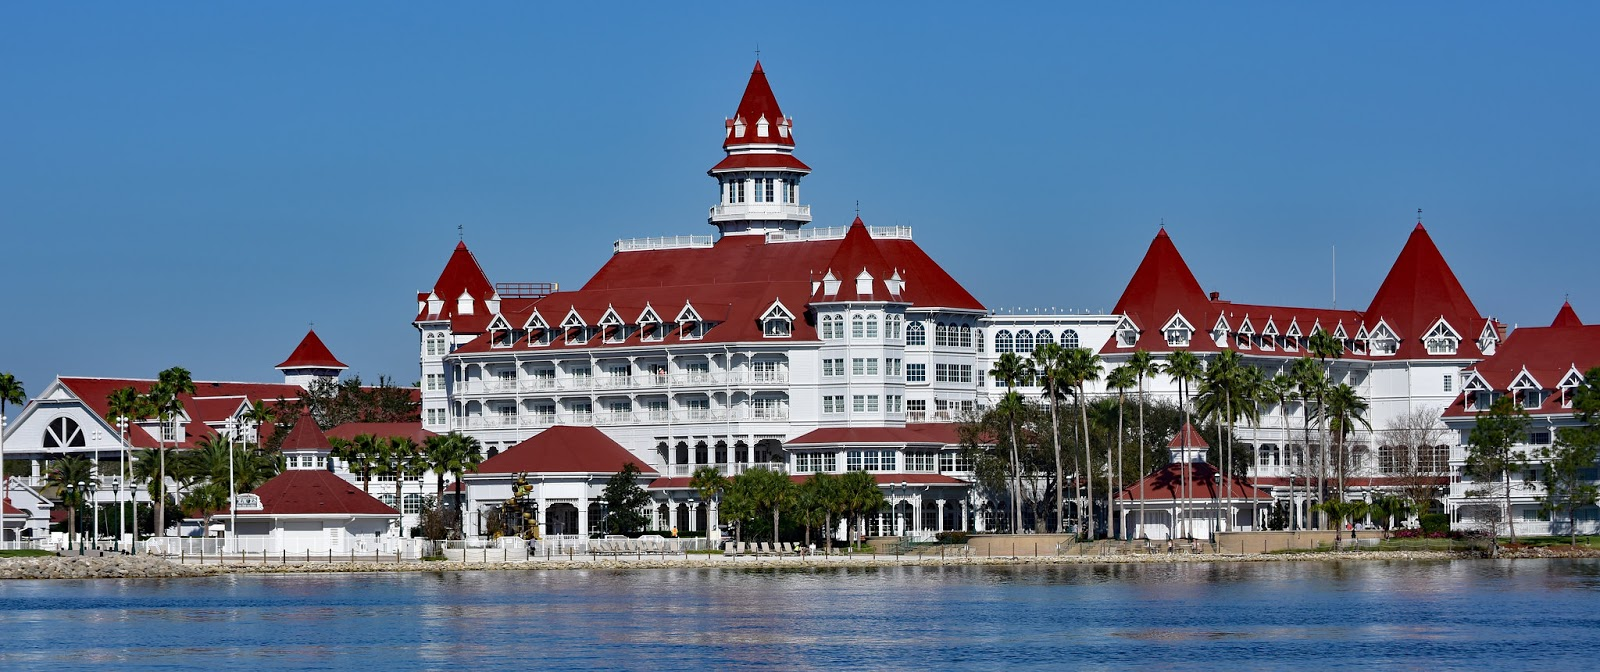 Wide angle of Disney Grand Floridian Resort